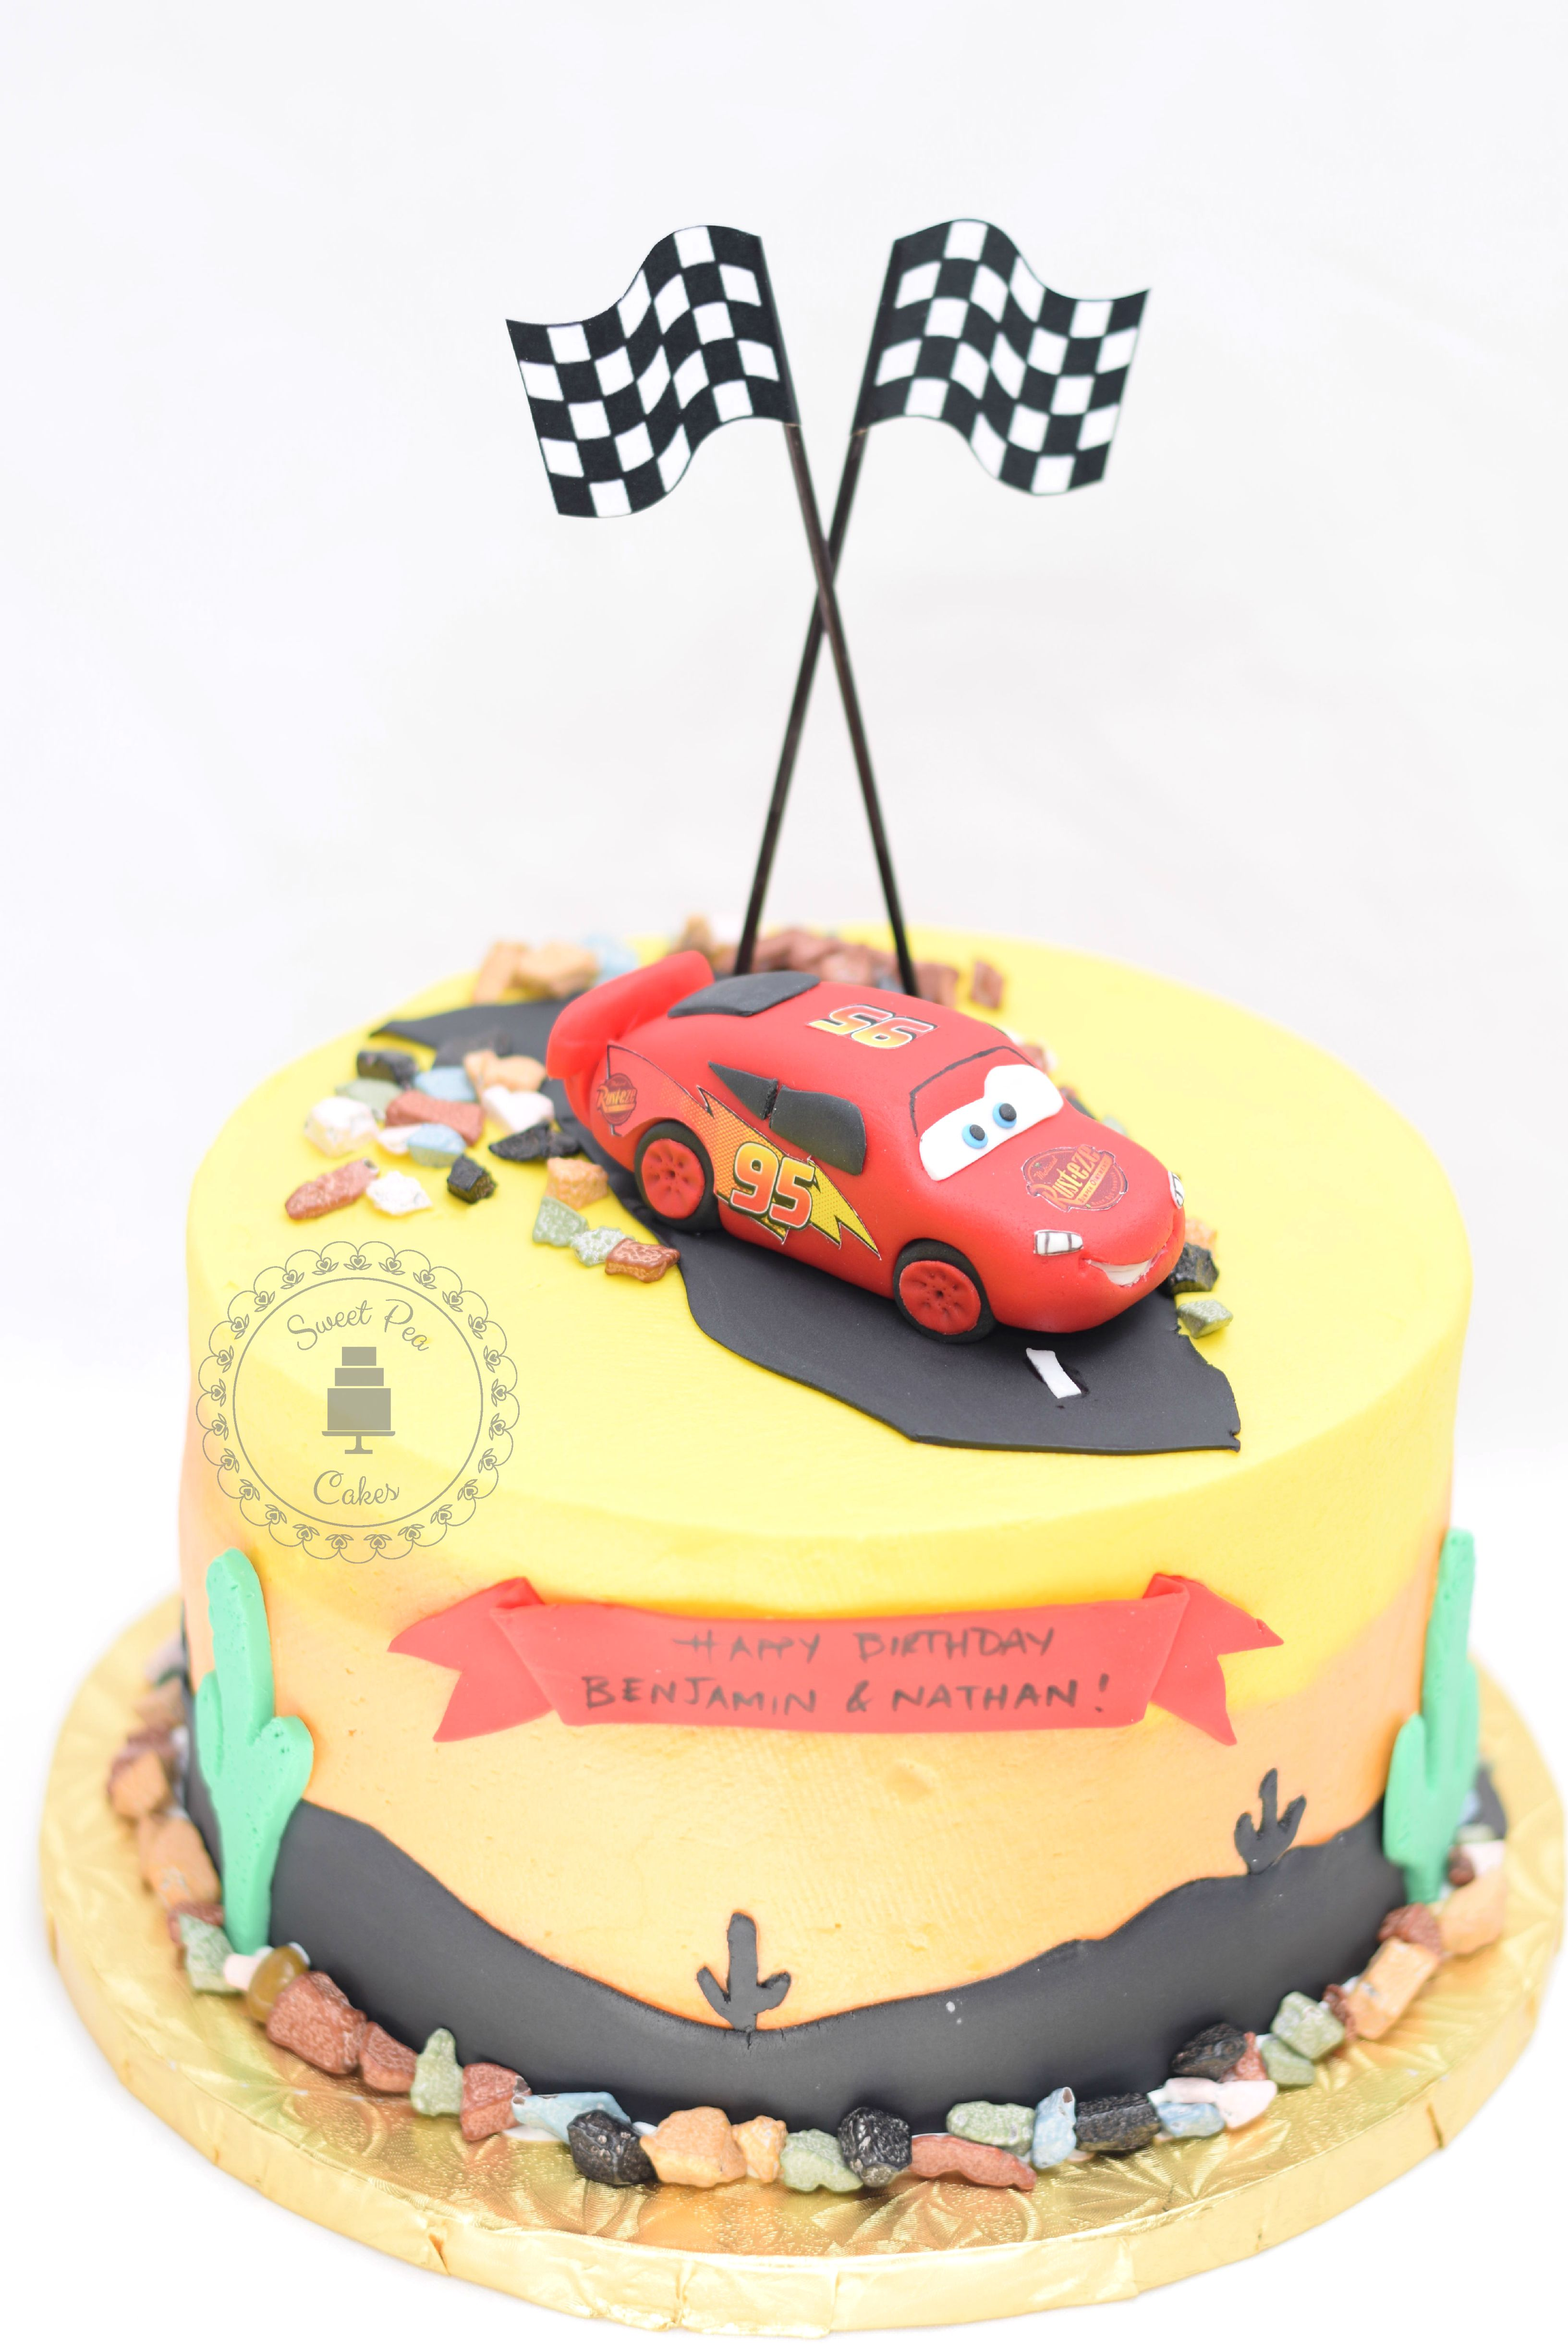 Cars the movie fondant cake with lightning mcqueen cake